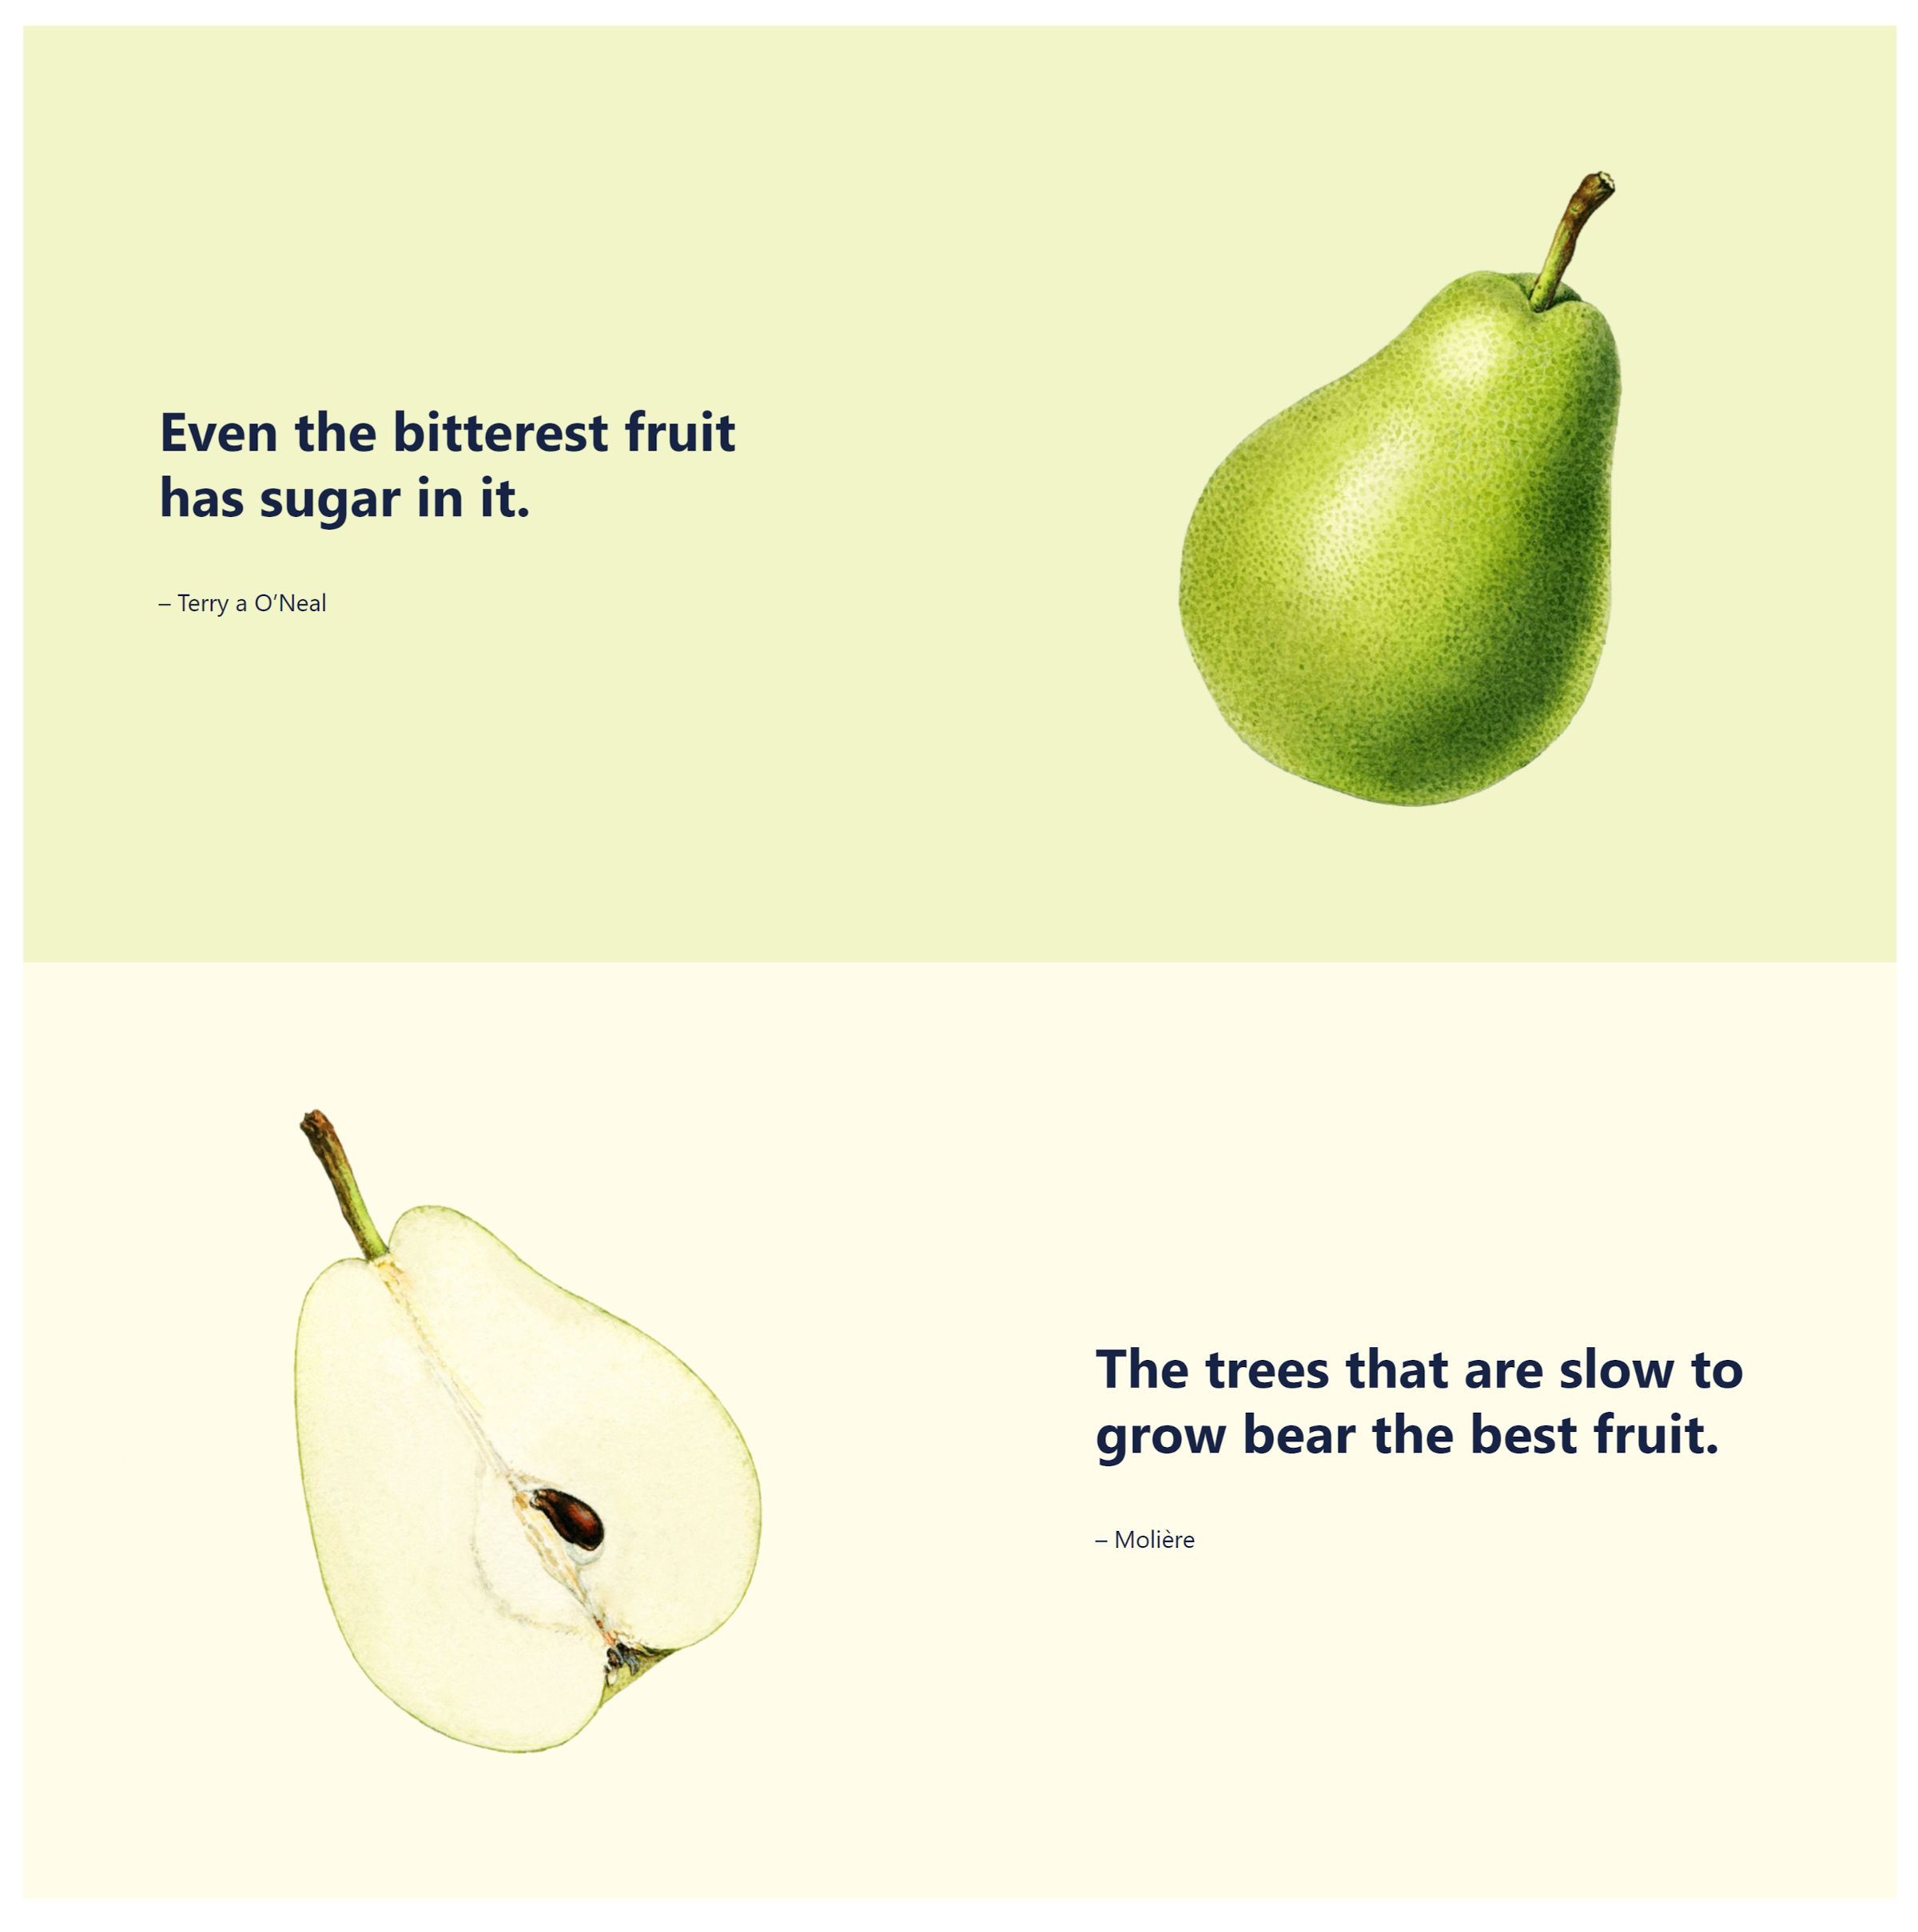 Two sections, each with a fruit and a quote.